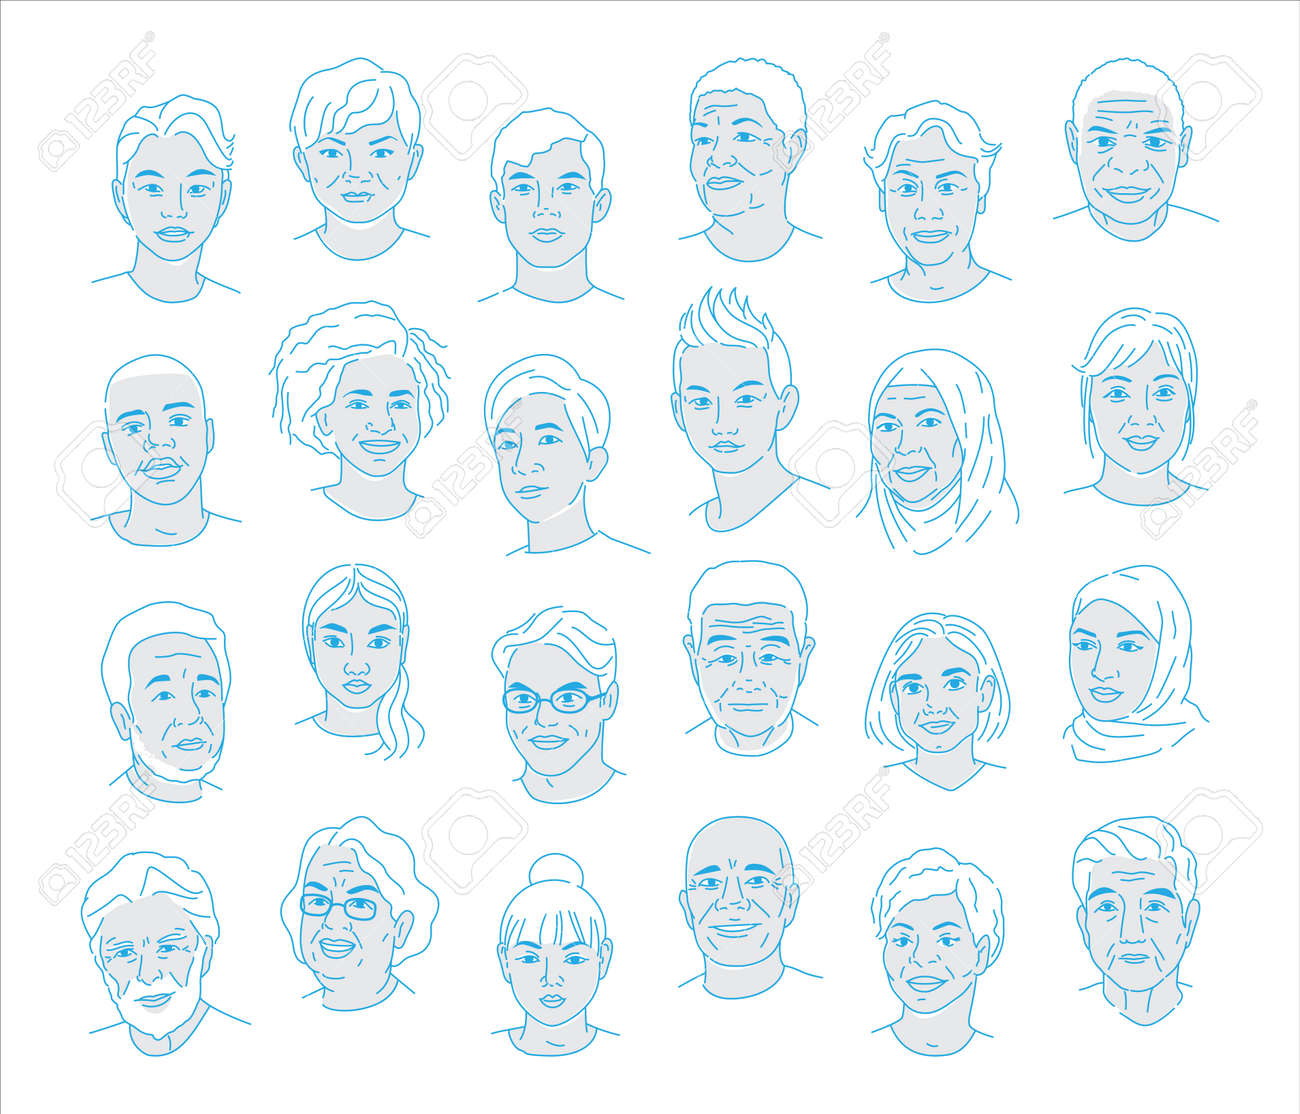 A collection of portraits of people of different nationalities and ages. Men and women of all races. Icons for user research experience, customer profile. - 150719696